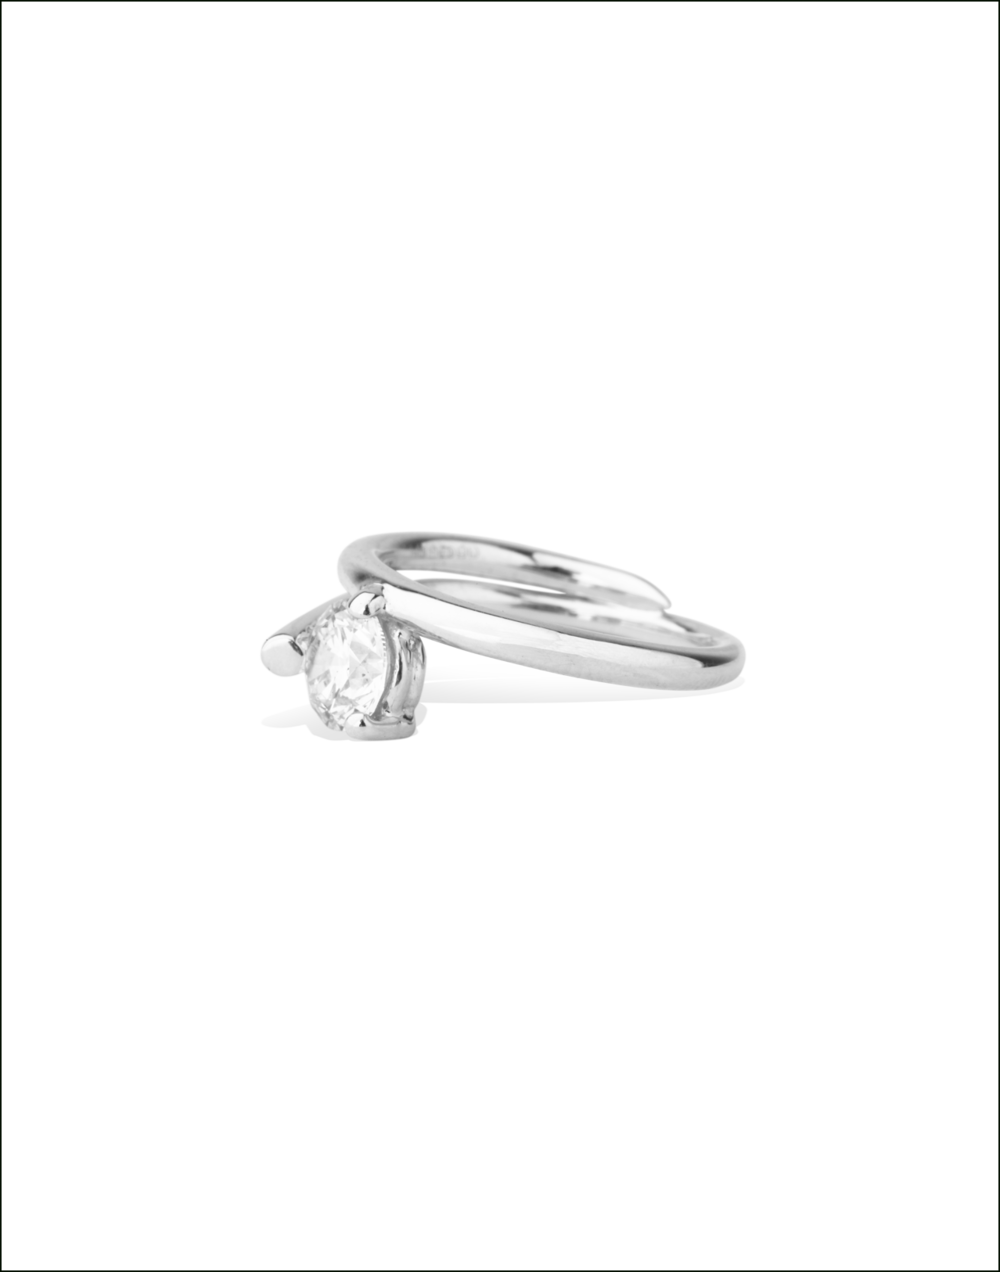 Completedworks-Subverted-Flower-Bridal-Ring-WHITE-GOLD-3-1.png